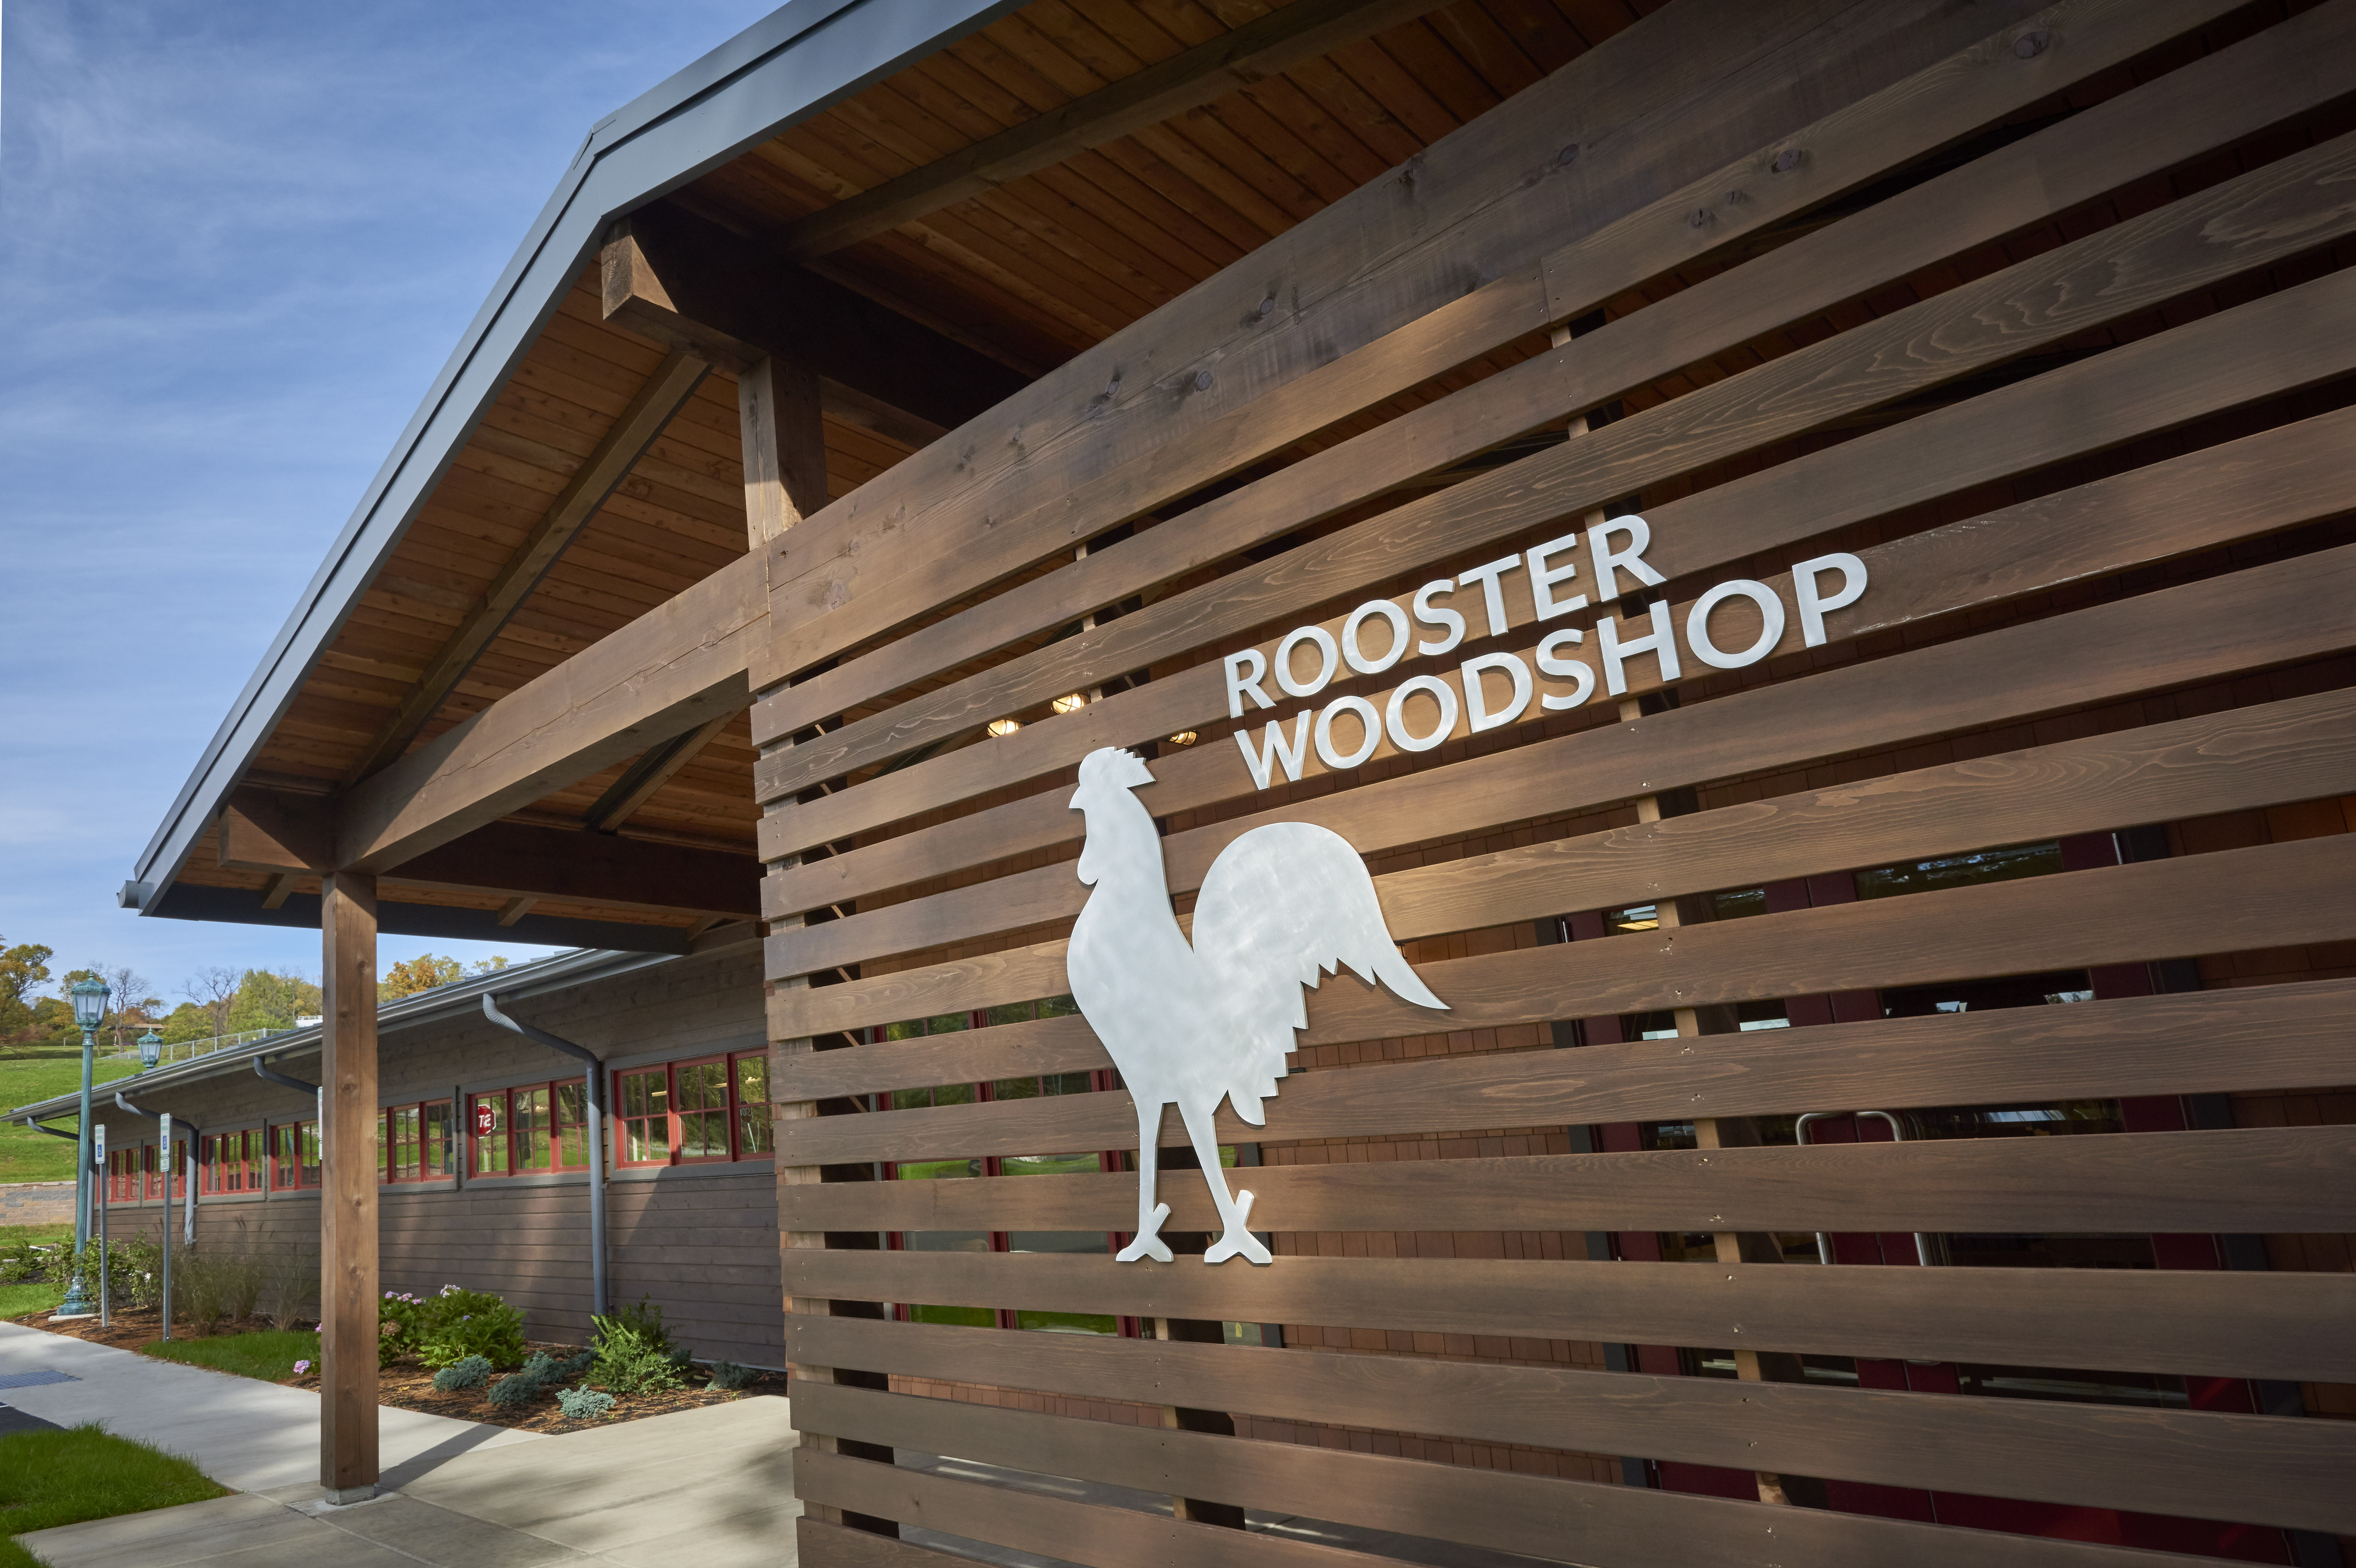 Rooster Wood Shop